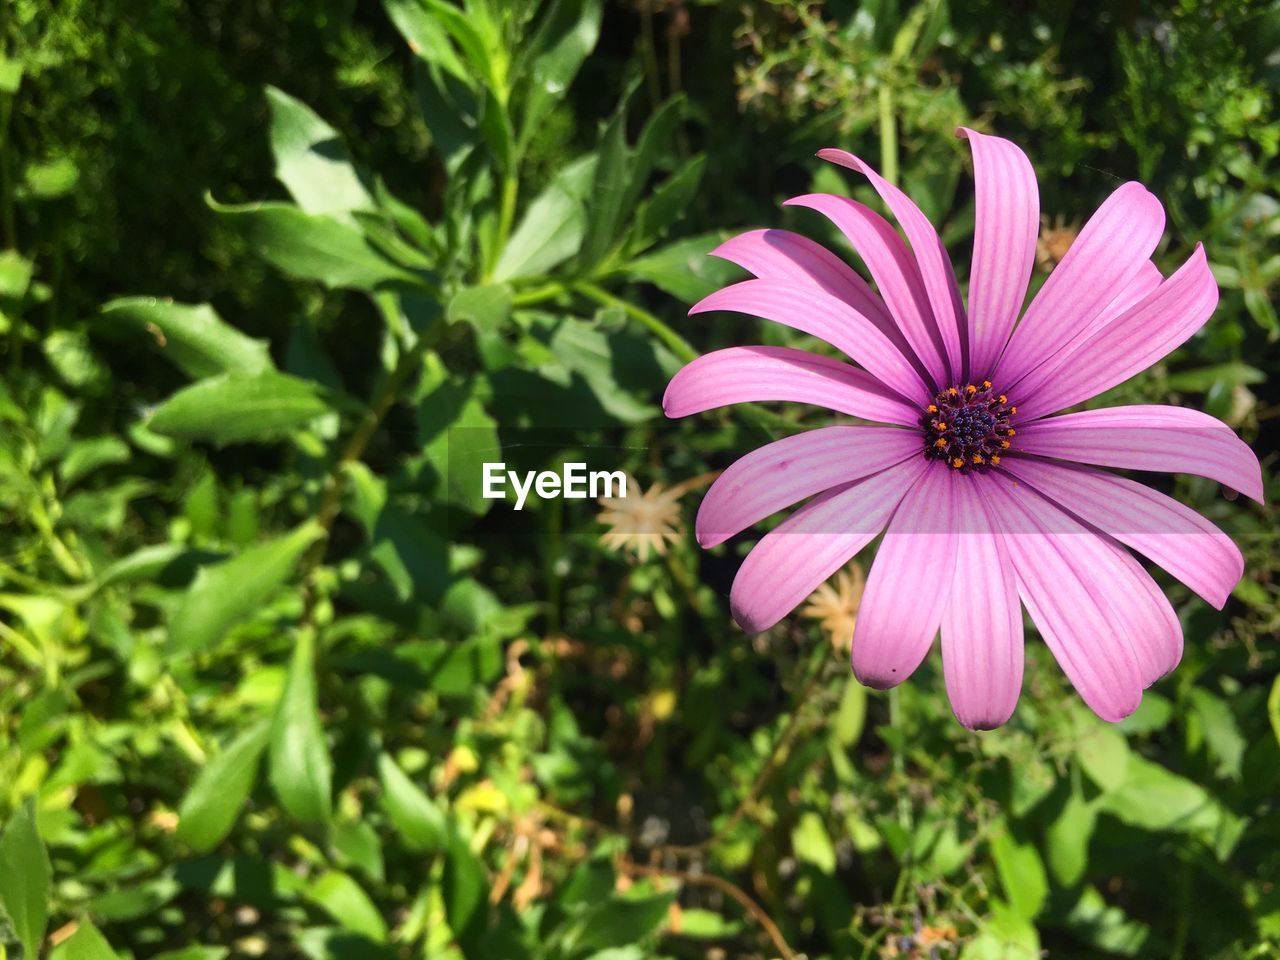 plant, flowering plant, flower, freshness, fragility, vulnerability, growth, beauty in nature, petal, flower head, inflorescence, close-up, pink color, osteospermum, nature, focus on foreground, day, no people, green color, pollen, purple, outdoors